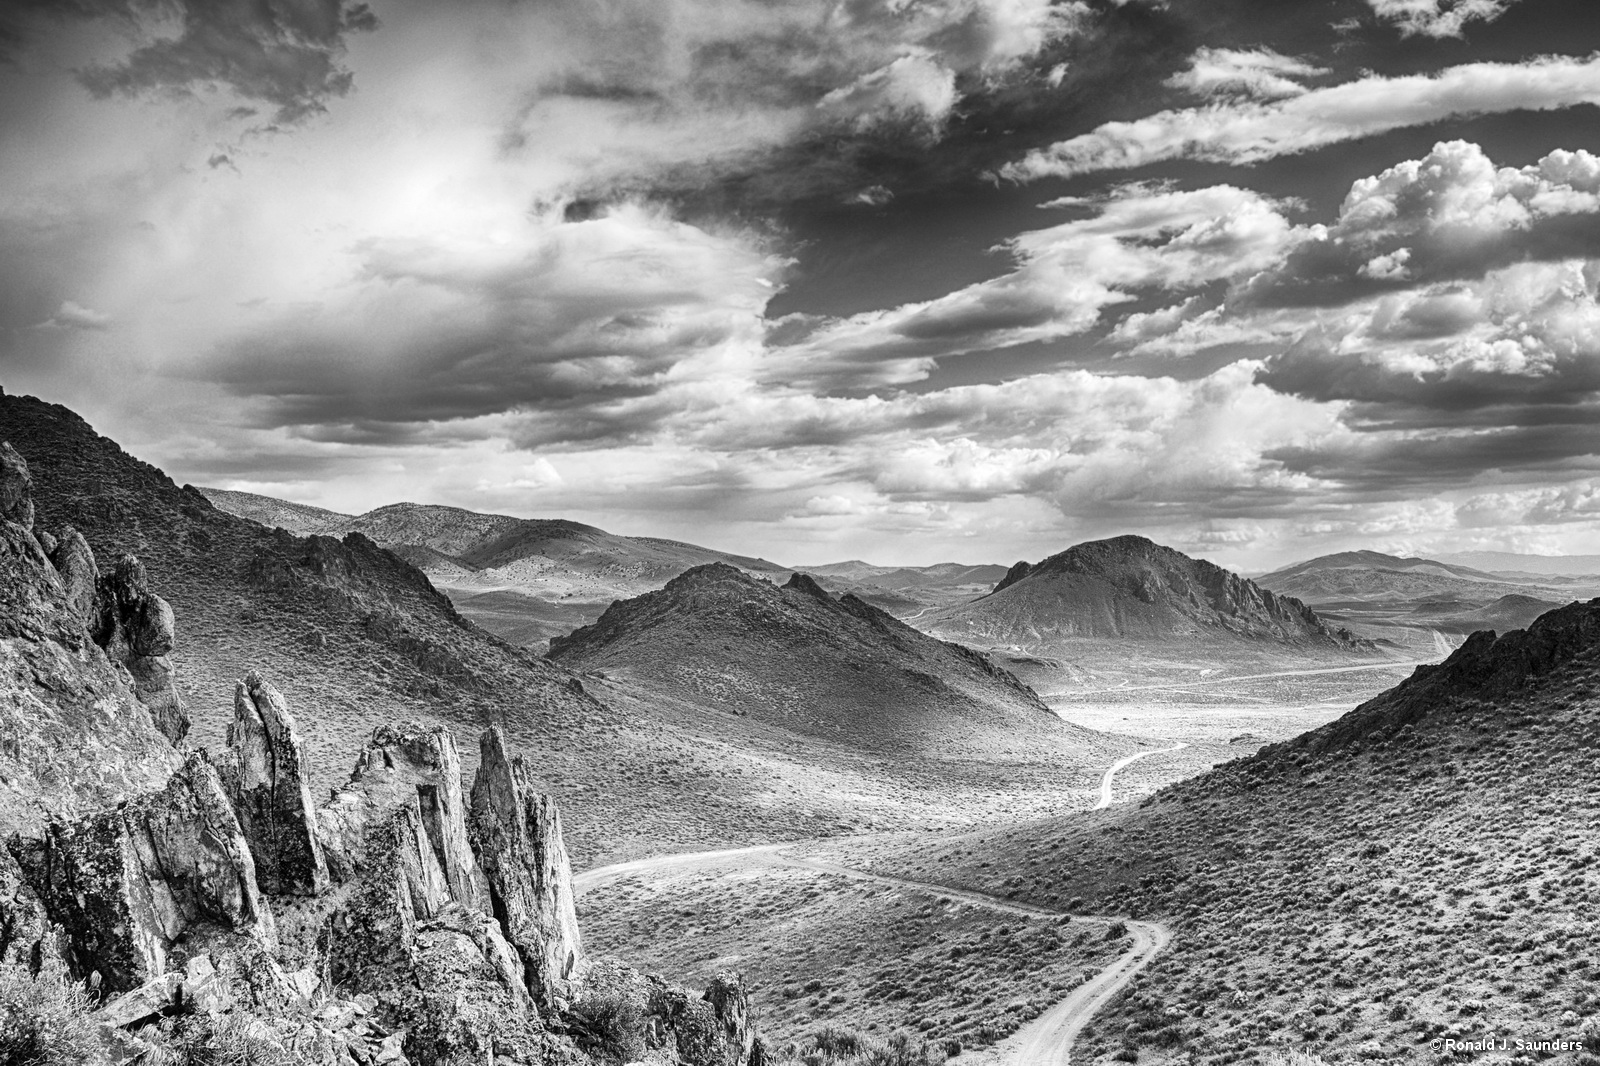 painted, hills, nevada, black, white, ron, ronald, saunders, view, landscape, fine art, keeble, shuchat,exhibition, photo